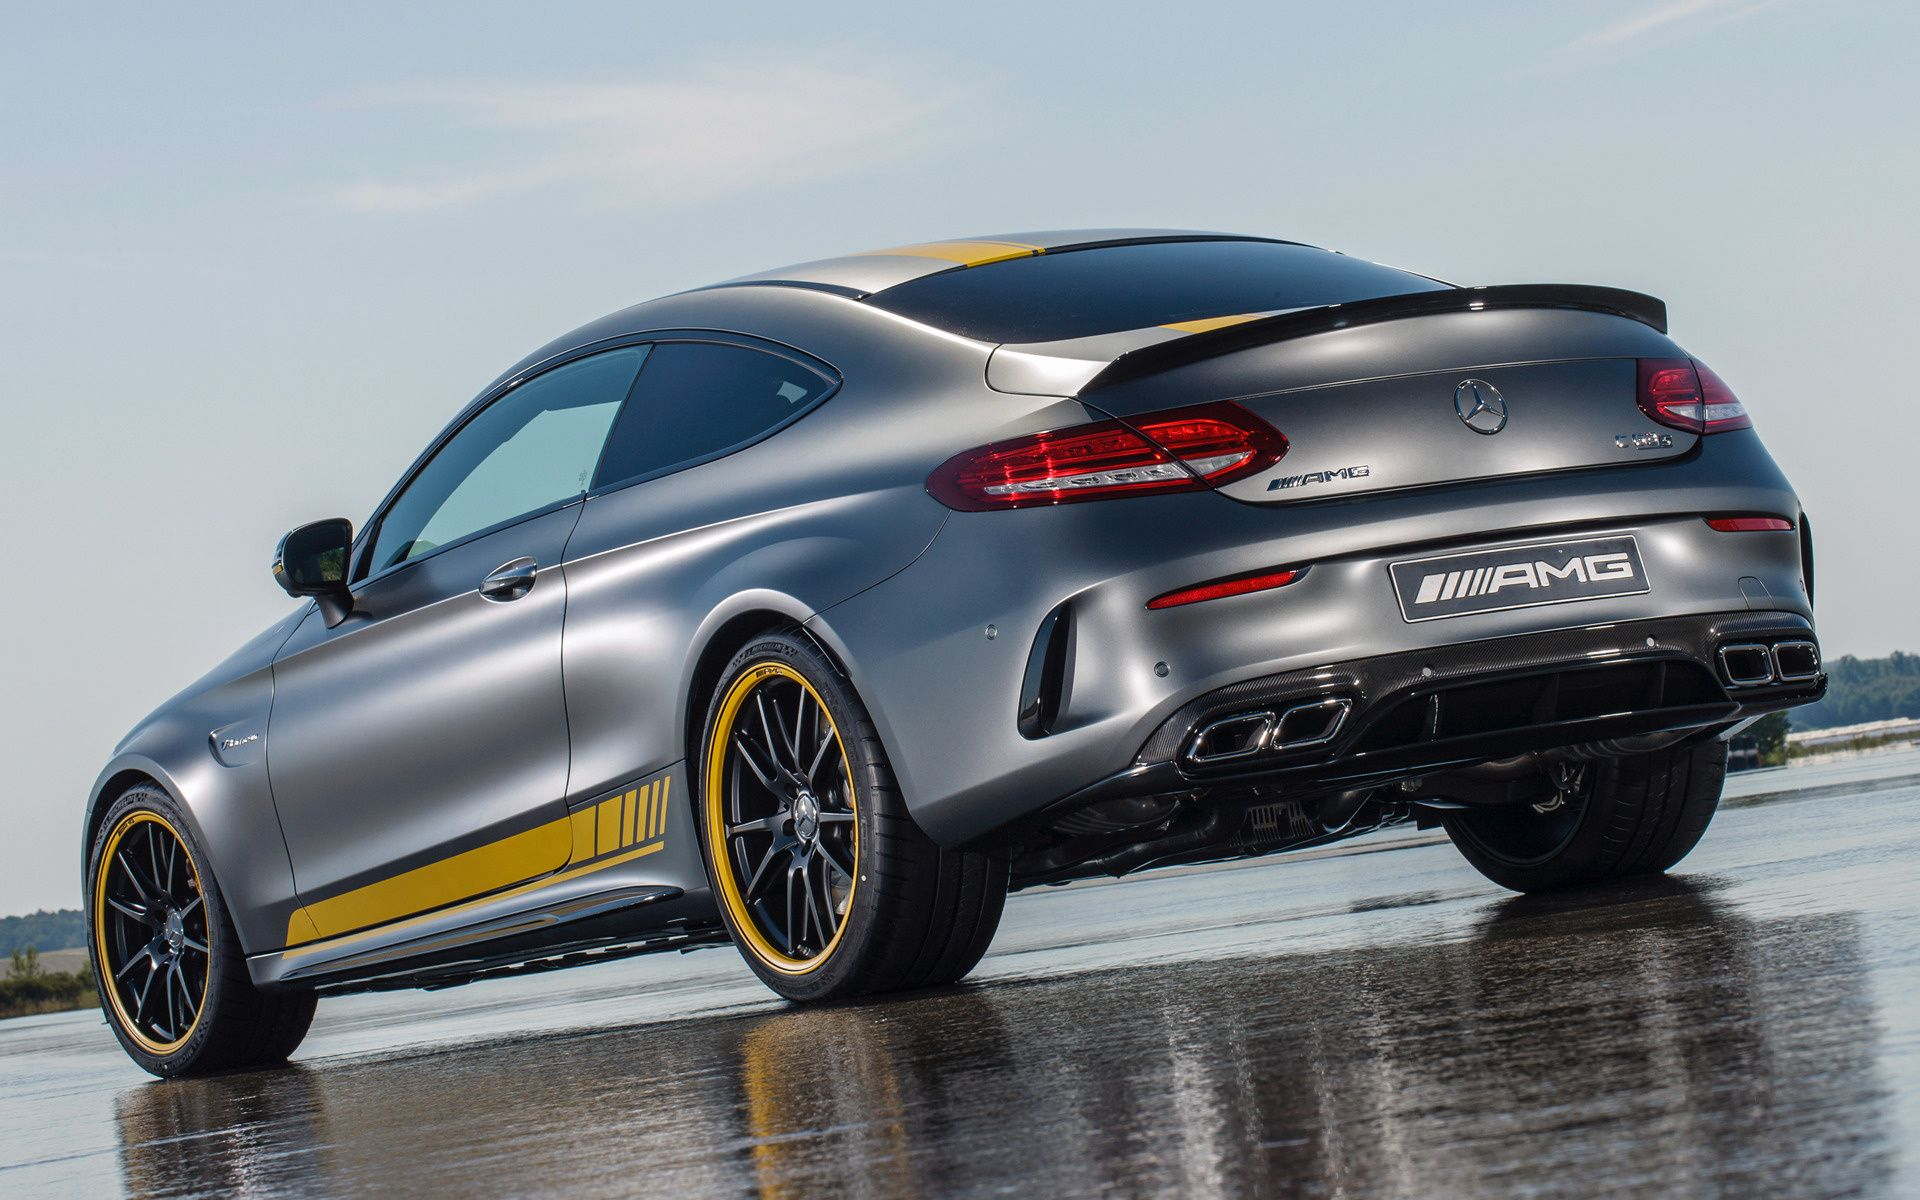 Mercedes amg c 63 s coupe edition 1 2016 wallpapers and hd images